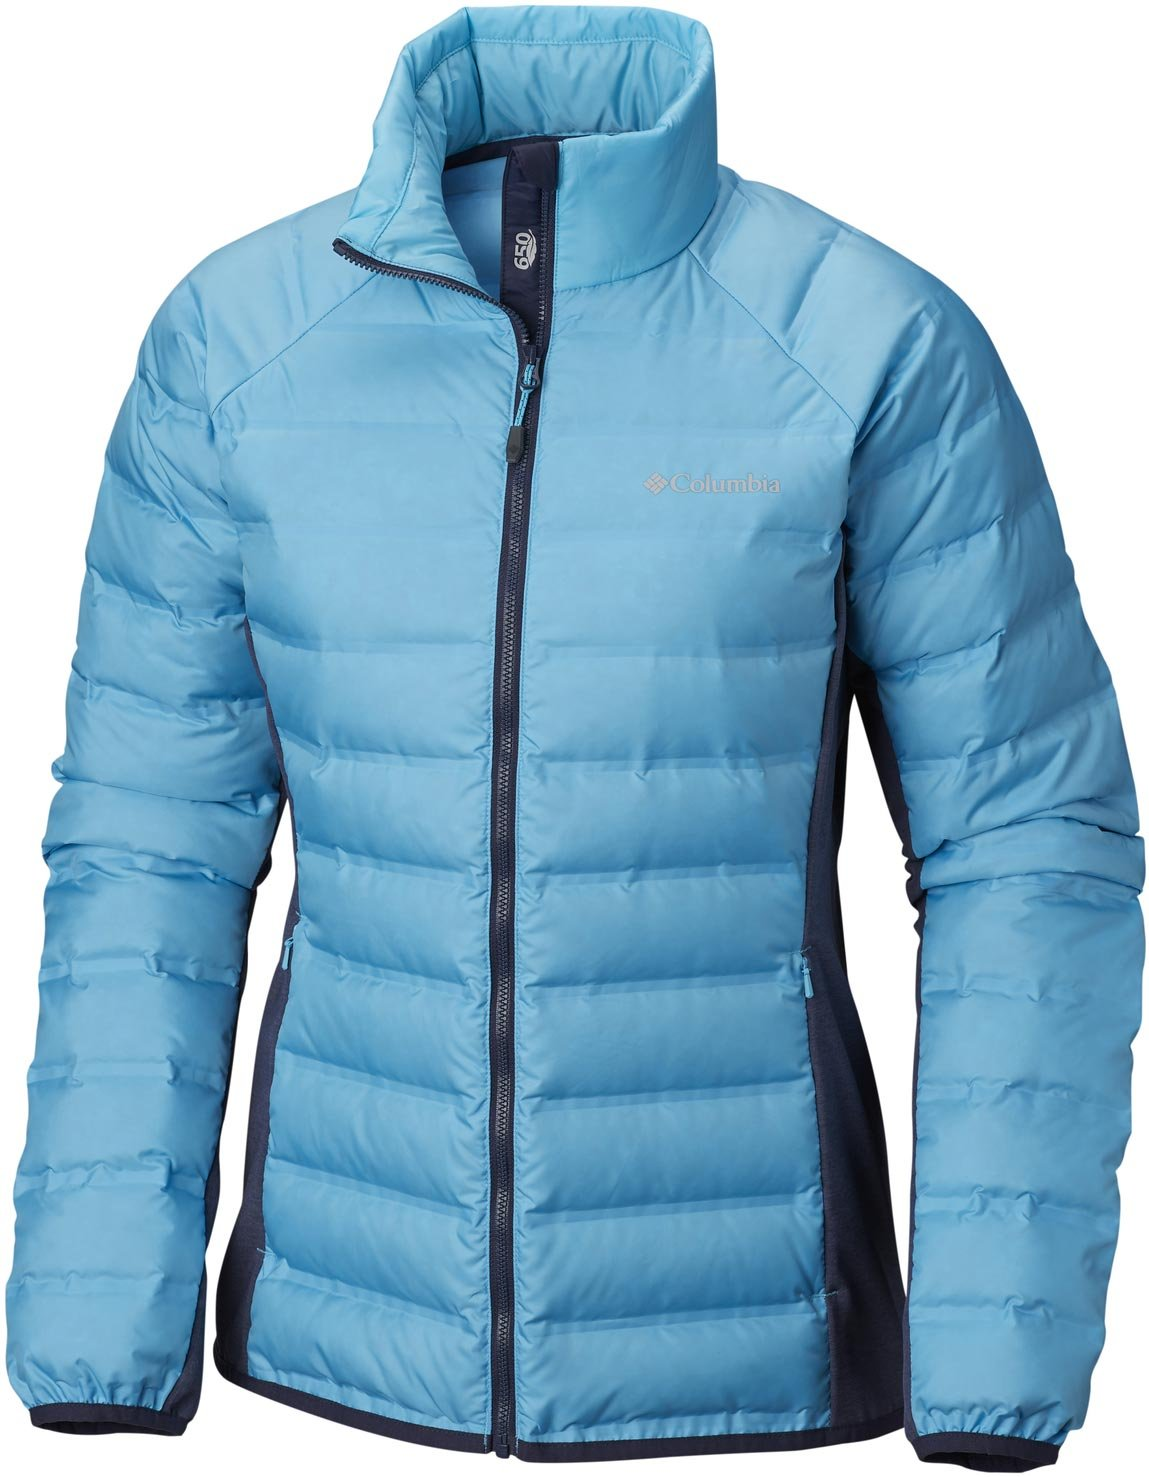 Columbia Lake 22 II Hybrid Jacket L